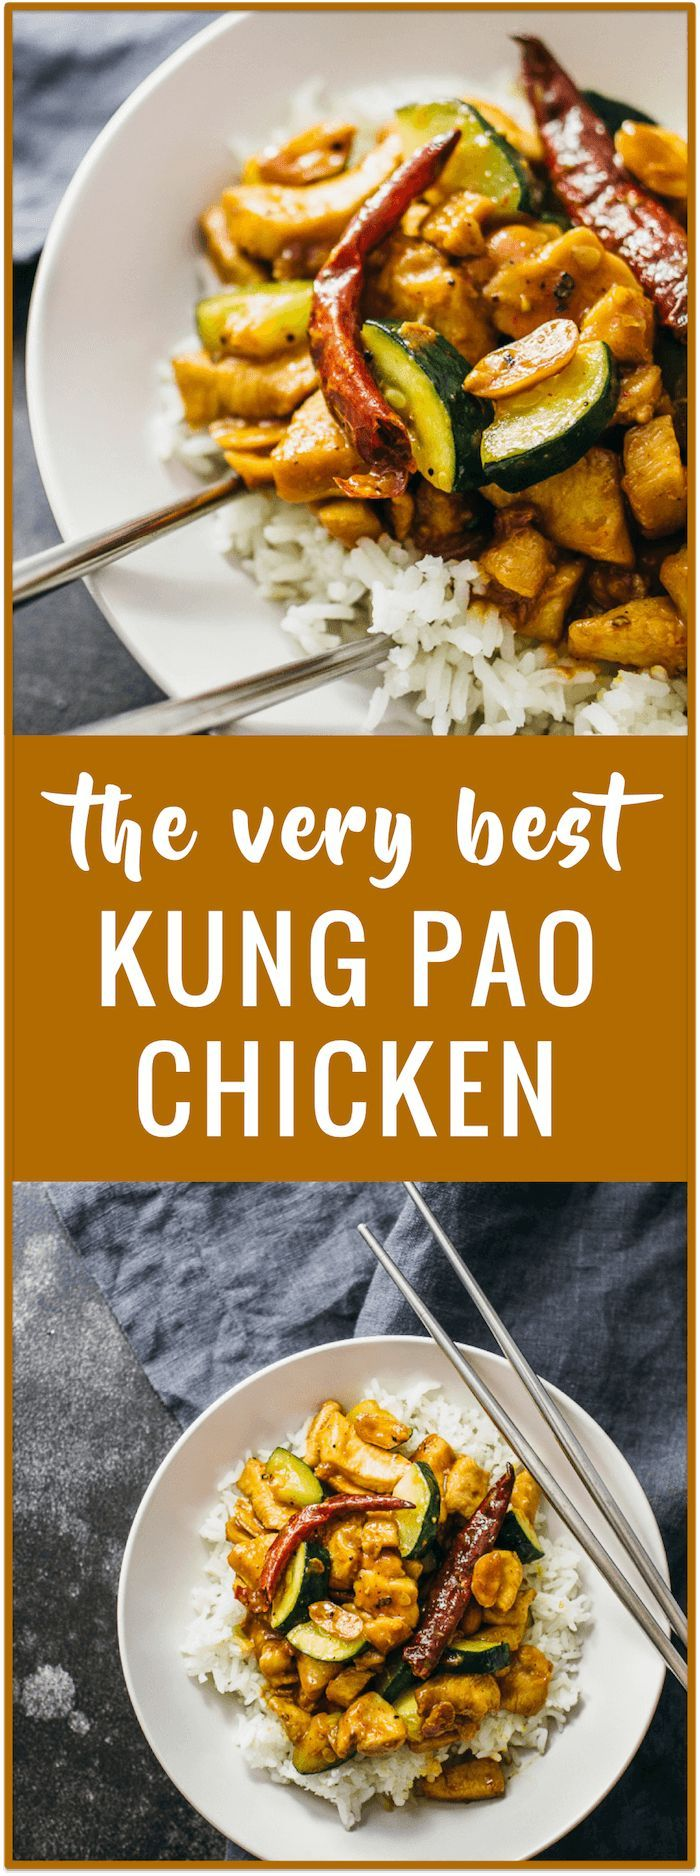 Best authentic kung pao chicken - This is my mom's authentic Chinese recipe for kung pao chicken — spicy saucy chicken with peanuts and zucchini